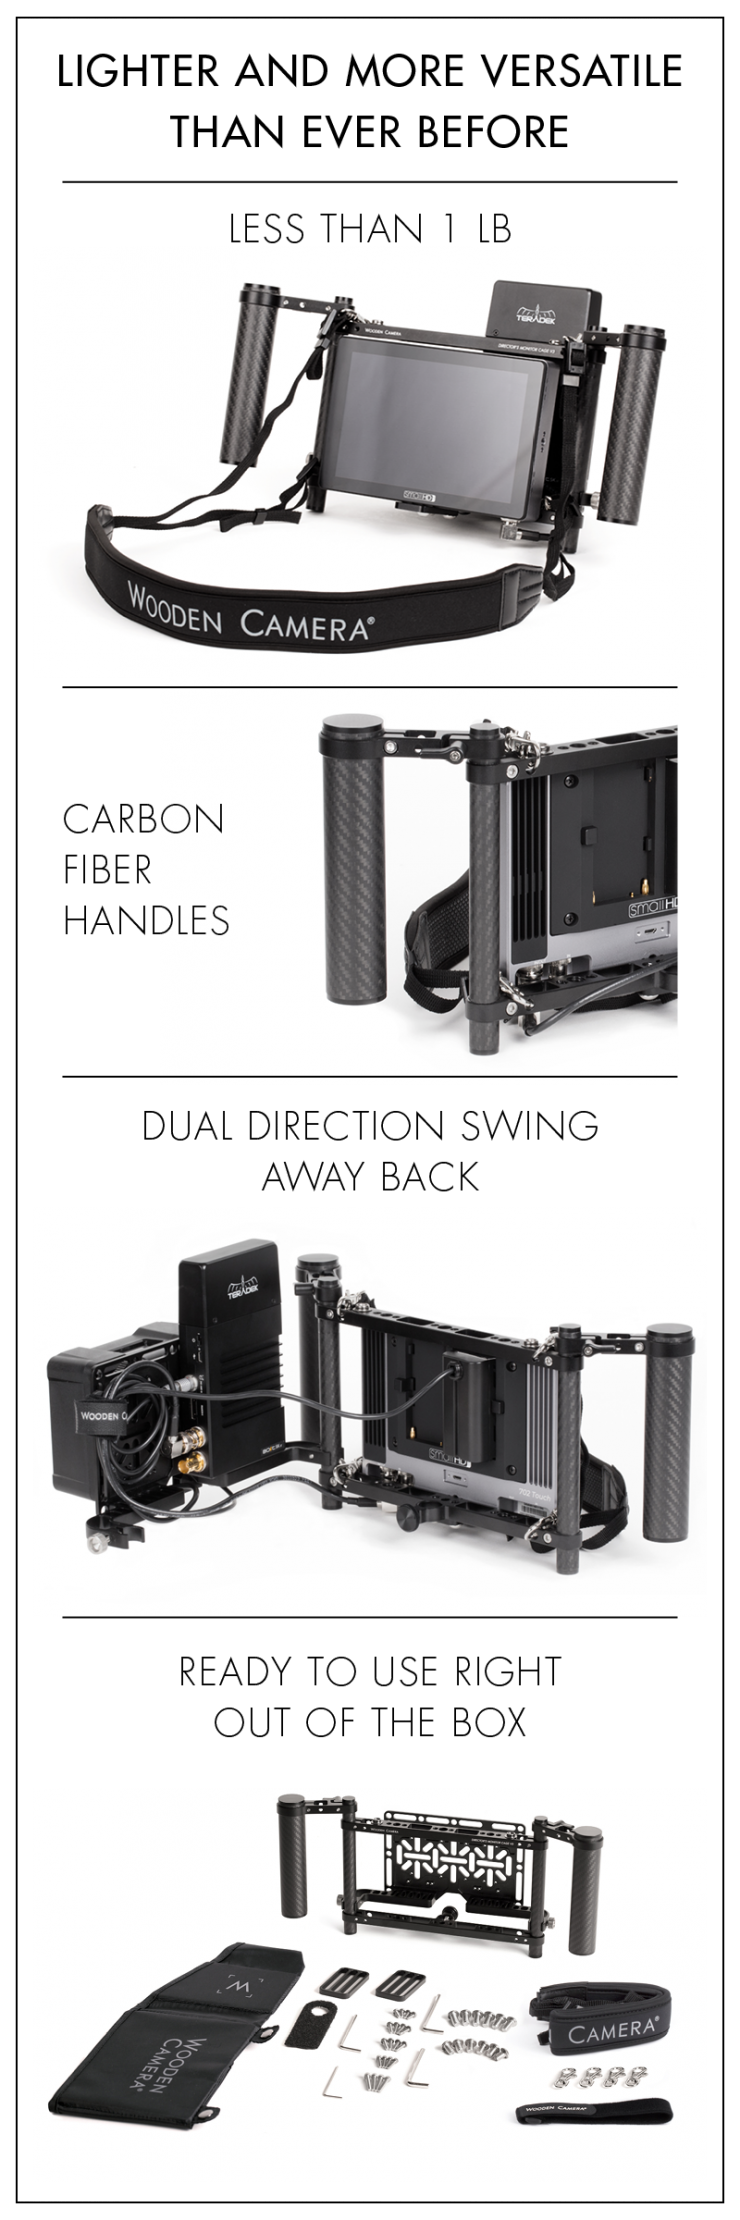 Wooden Camera's New Director's Monitor Cage V3